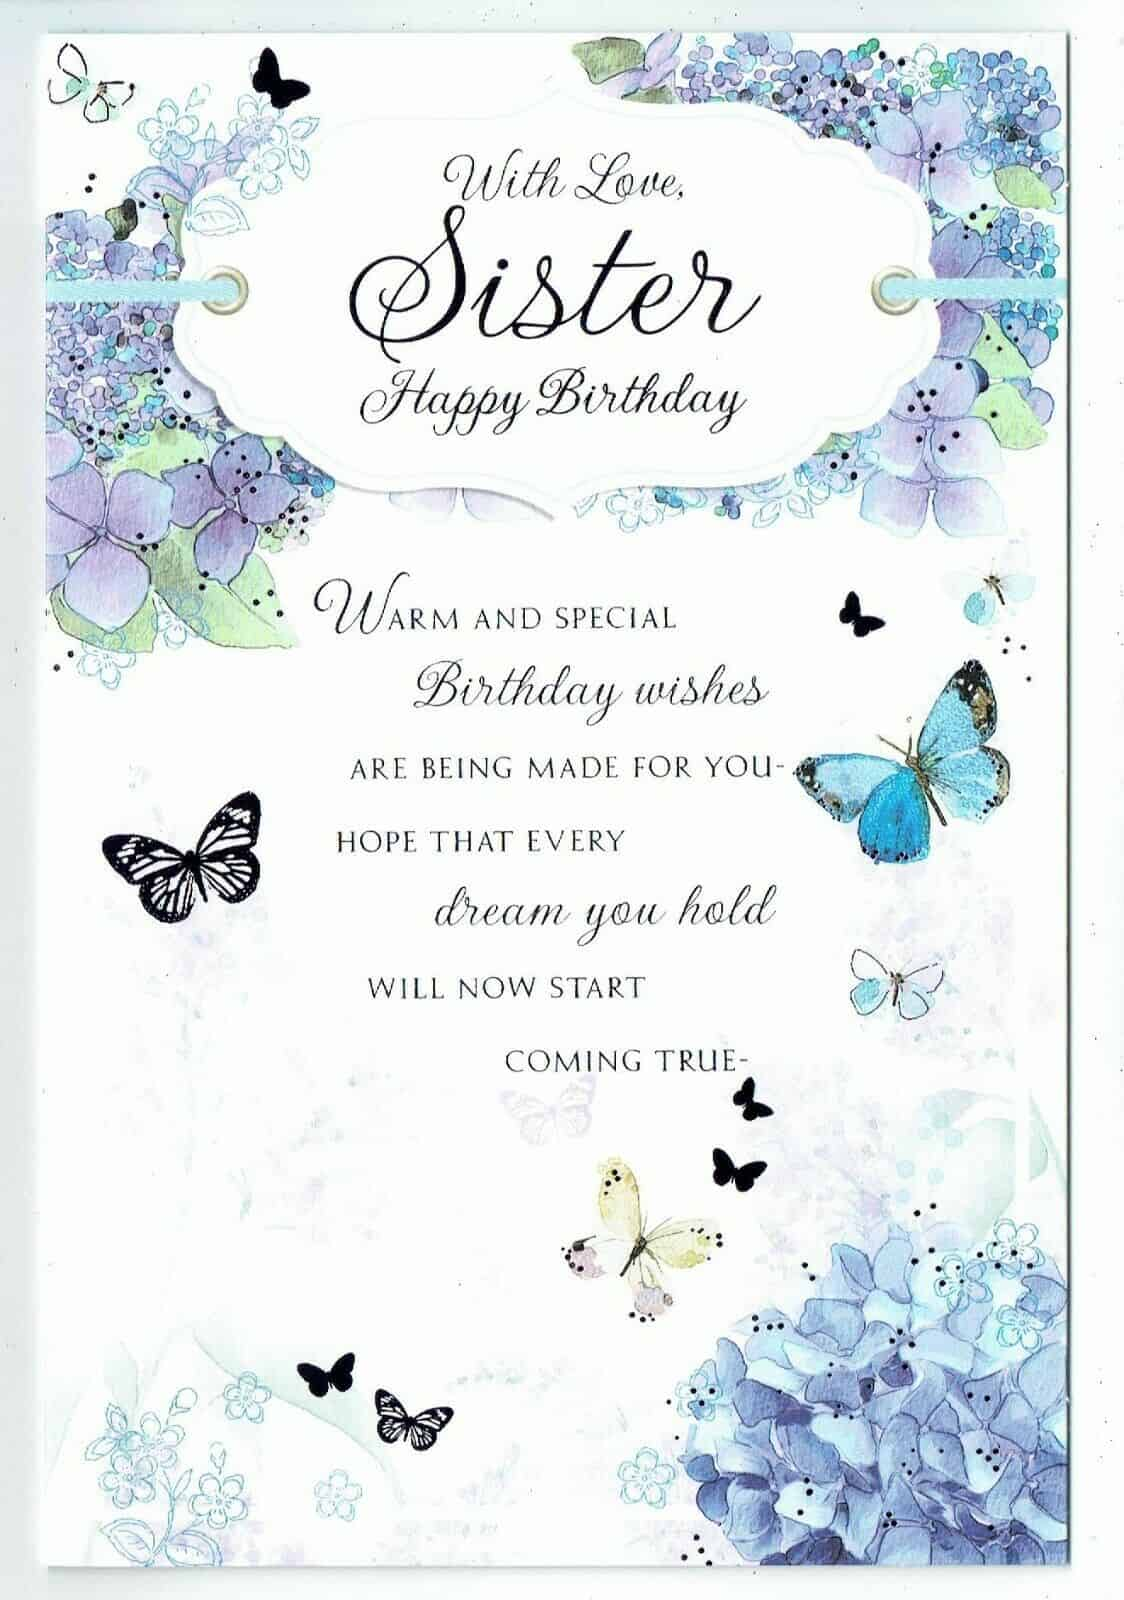 Sister Birthday Card With Butterfly Sentiment Verse Design